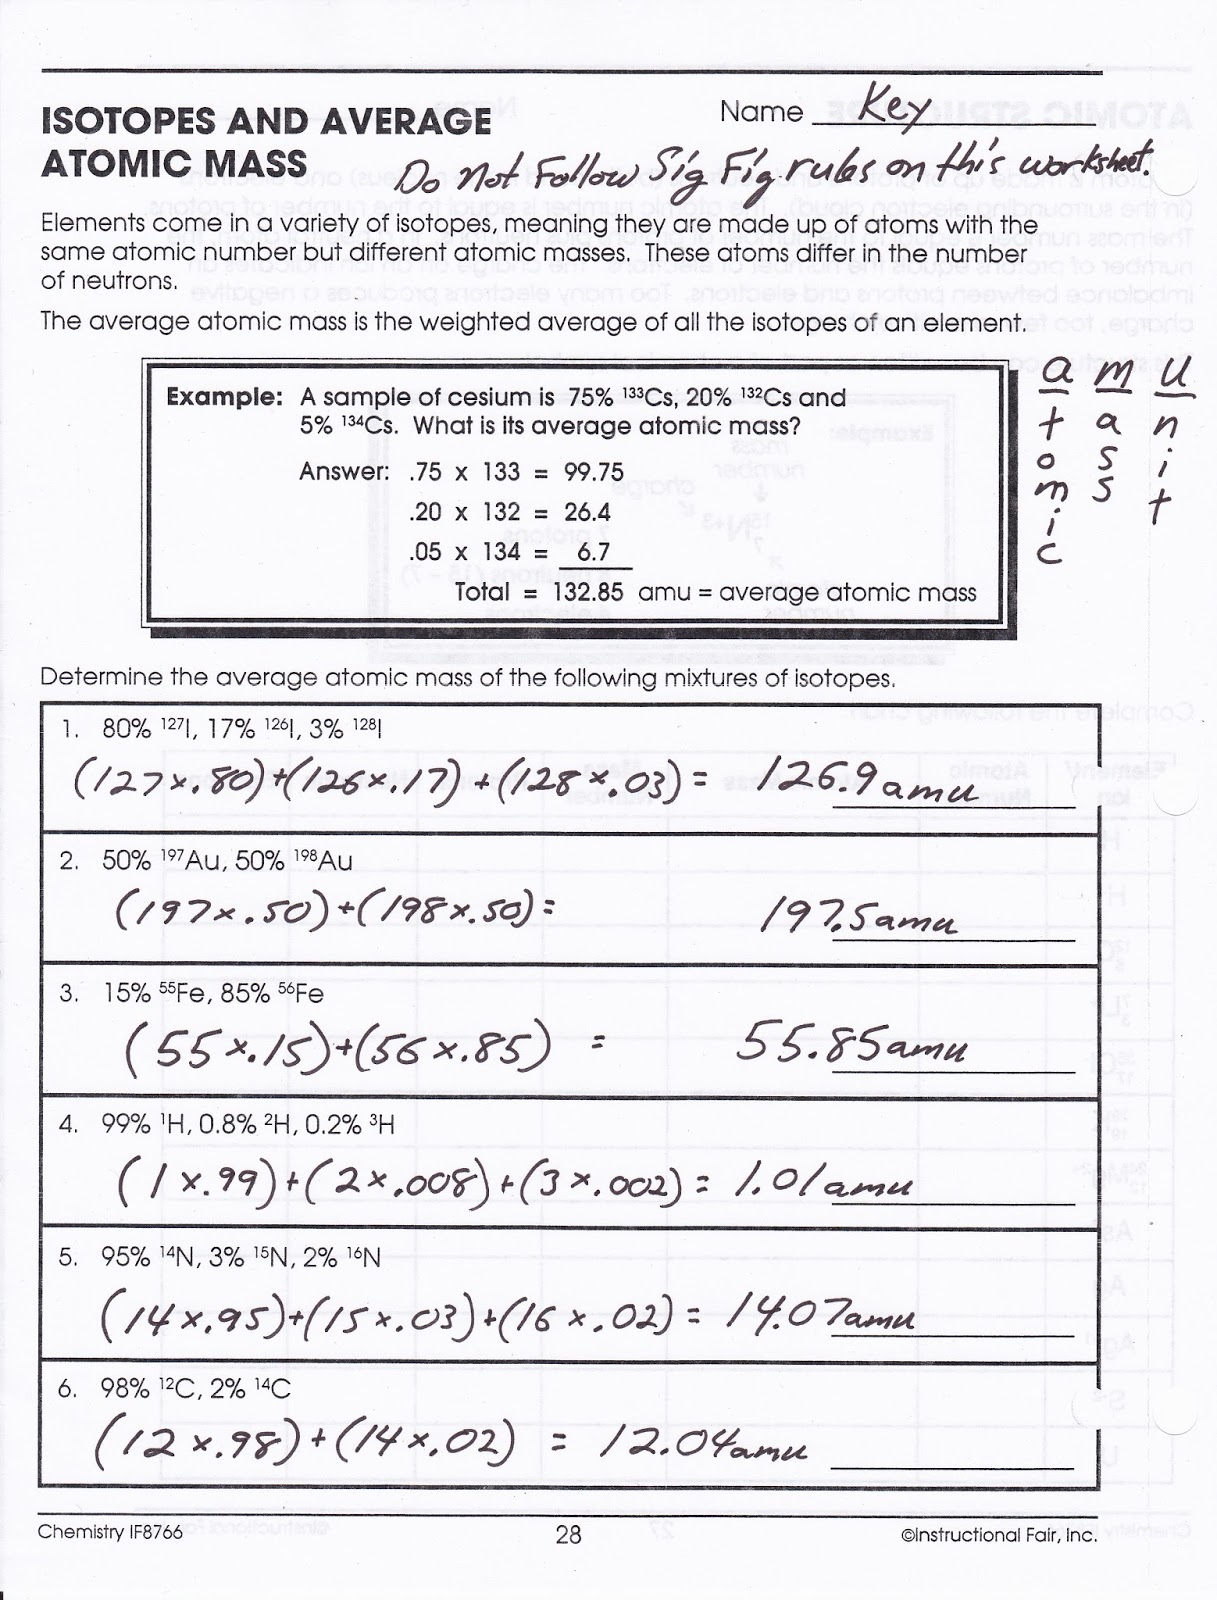 Isotopes And Average Atomic Mass Worksheet